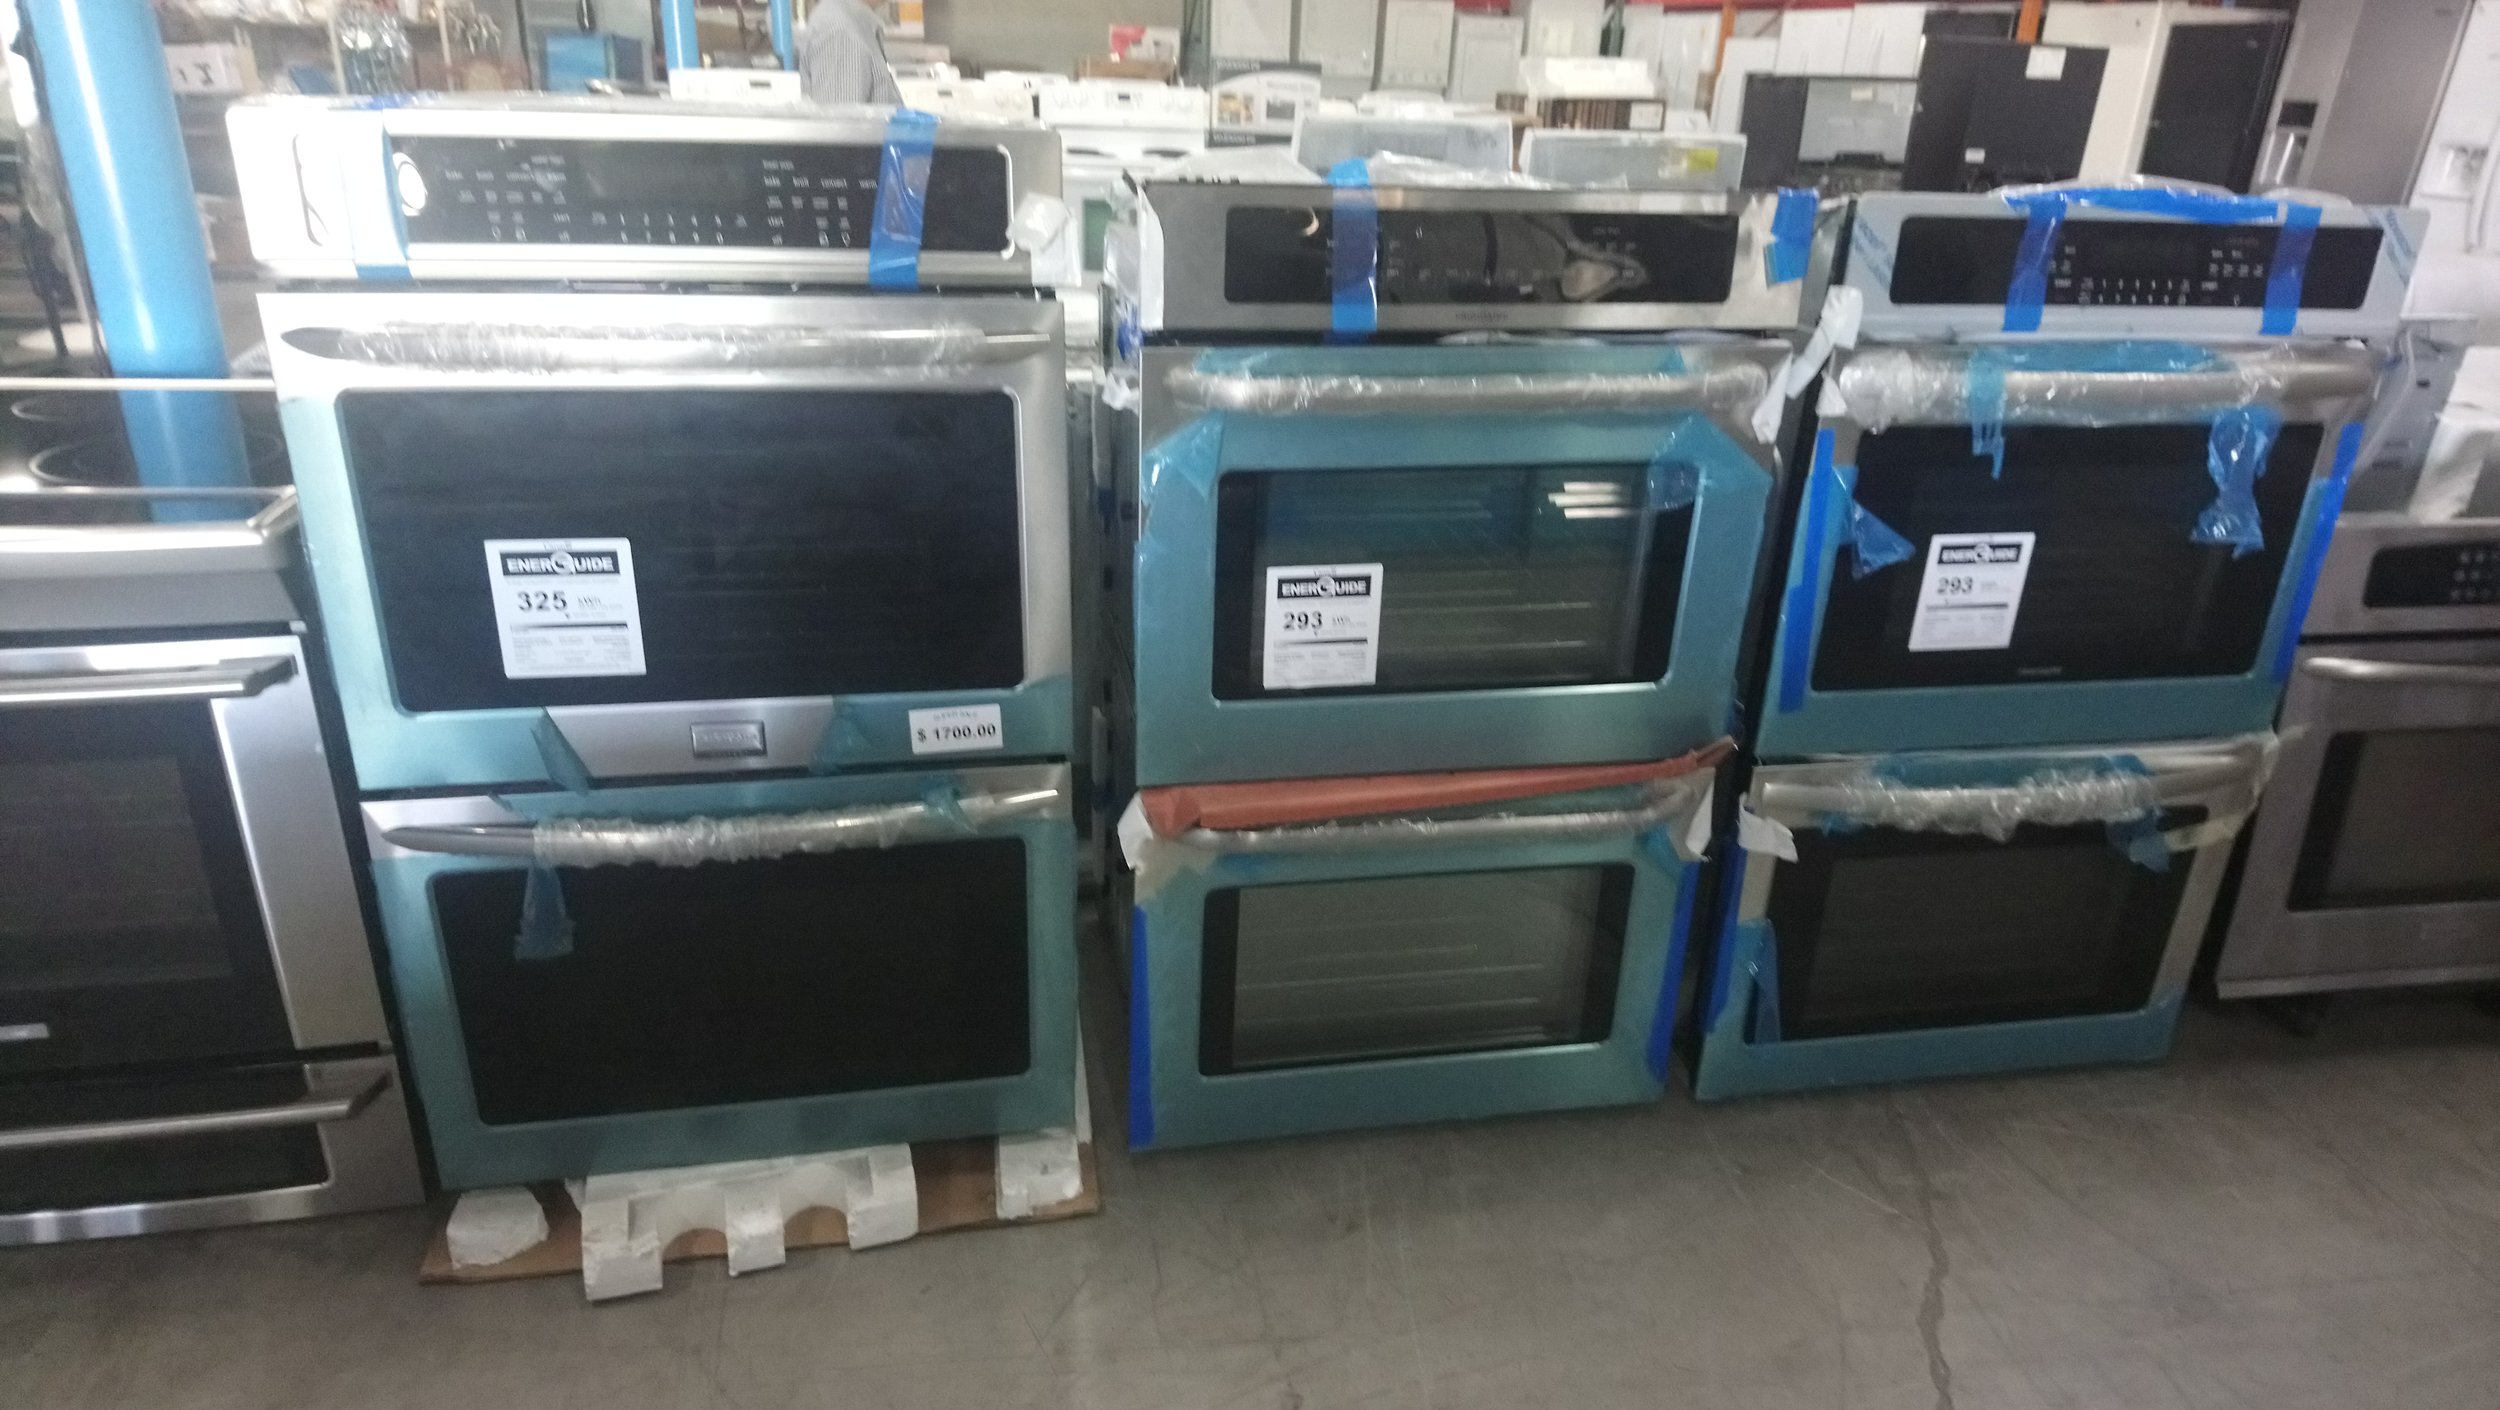 New Wall Double Electric Ovens @ $700.00 and UP ( 1 Year Warranty )